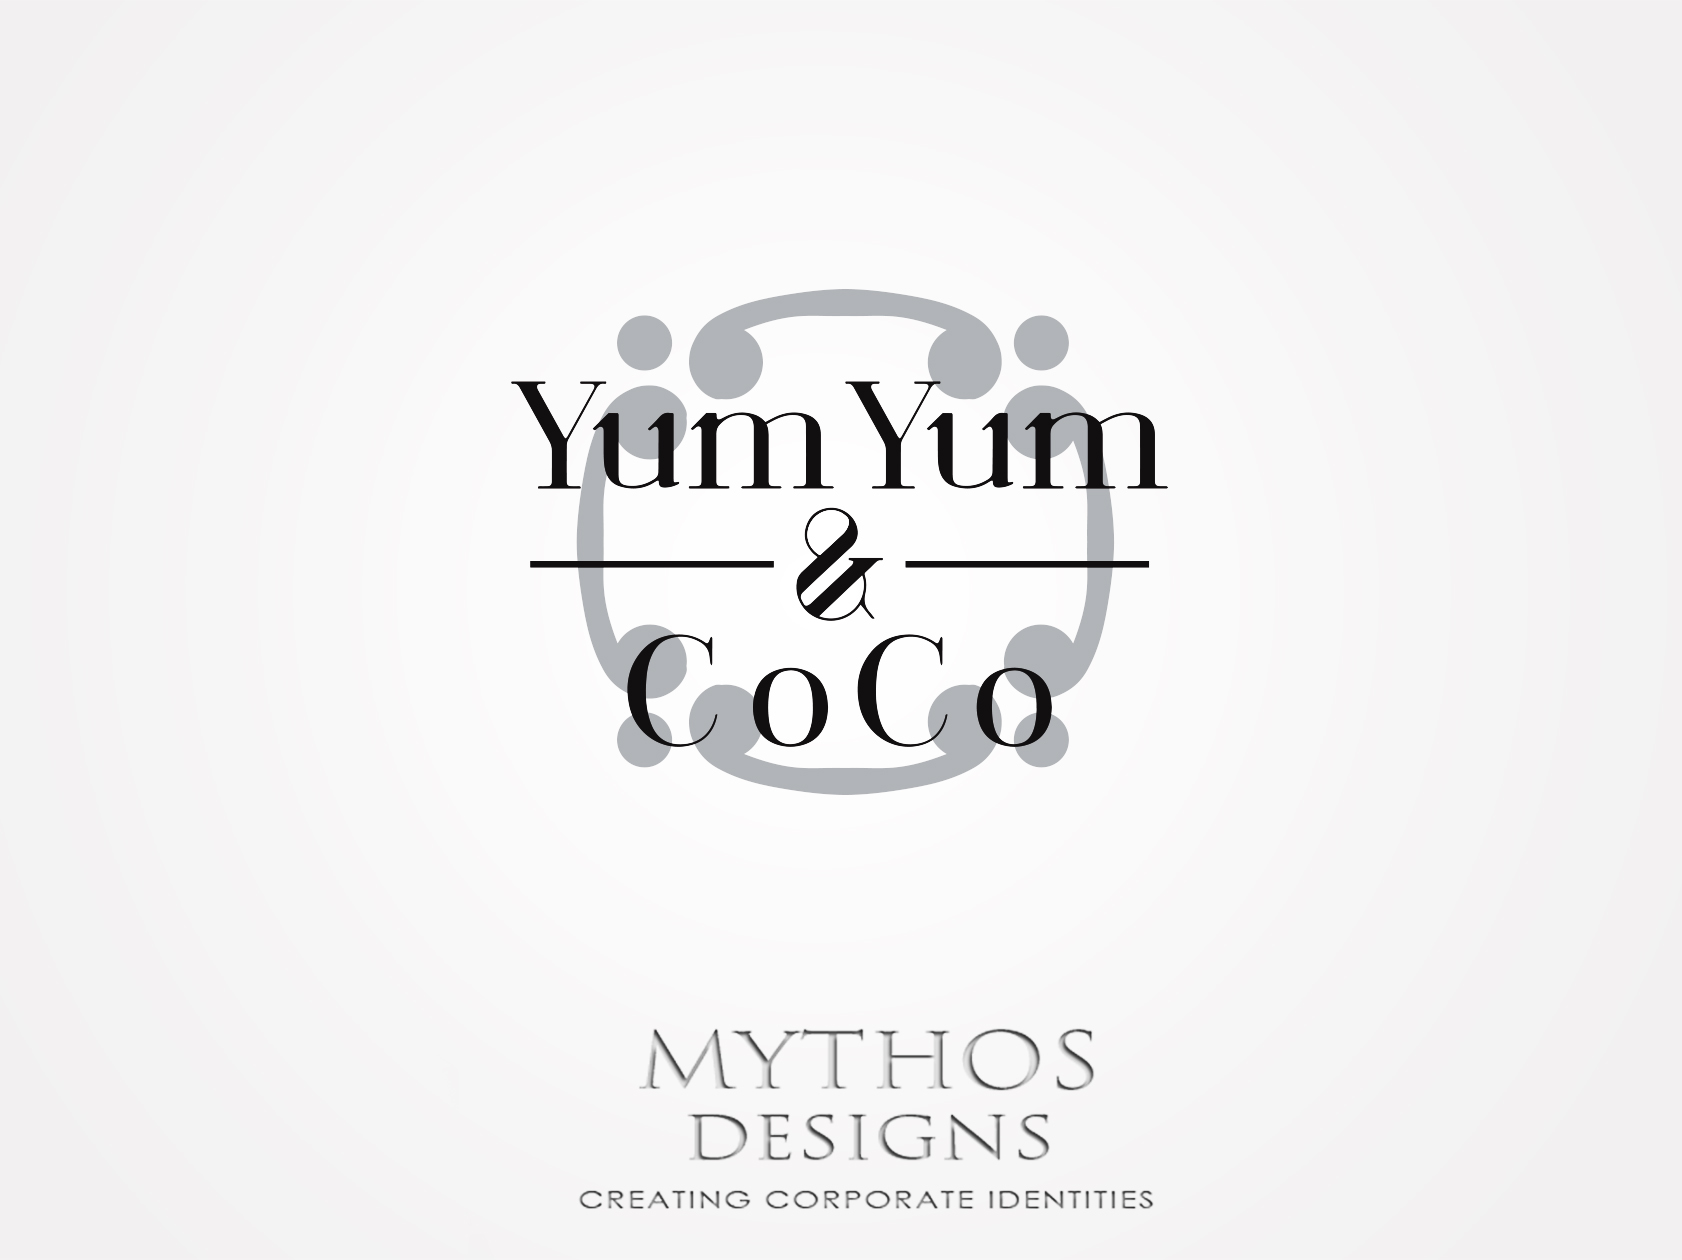 Logo Design by Mythos Designs - Entry No. 1 in the Logo Design Contest Logo Design for YumYum & CoCo.